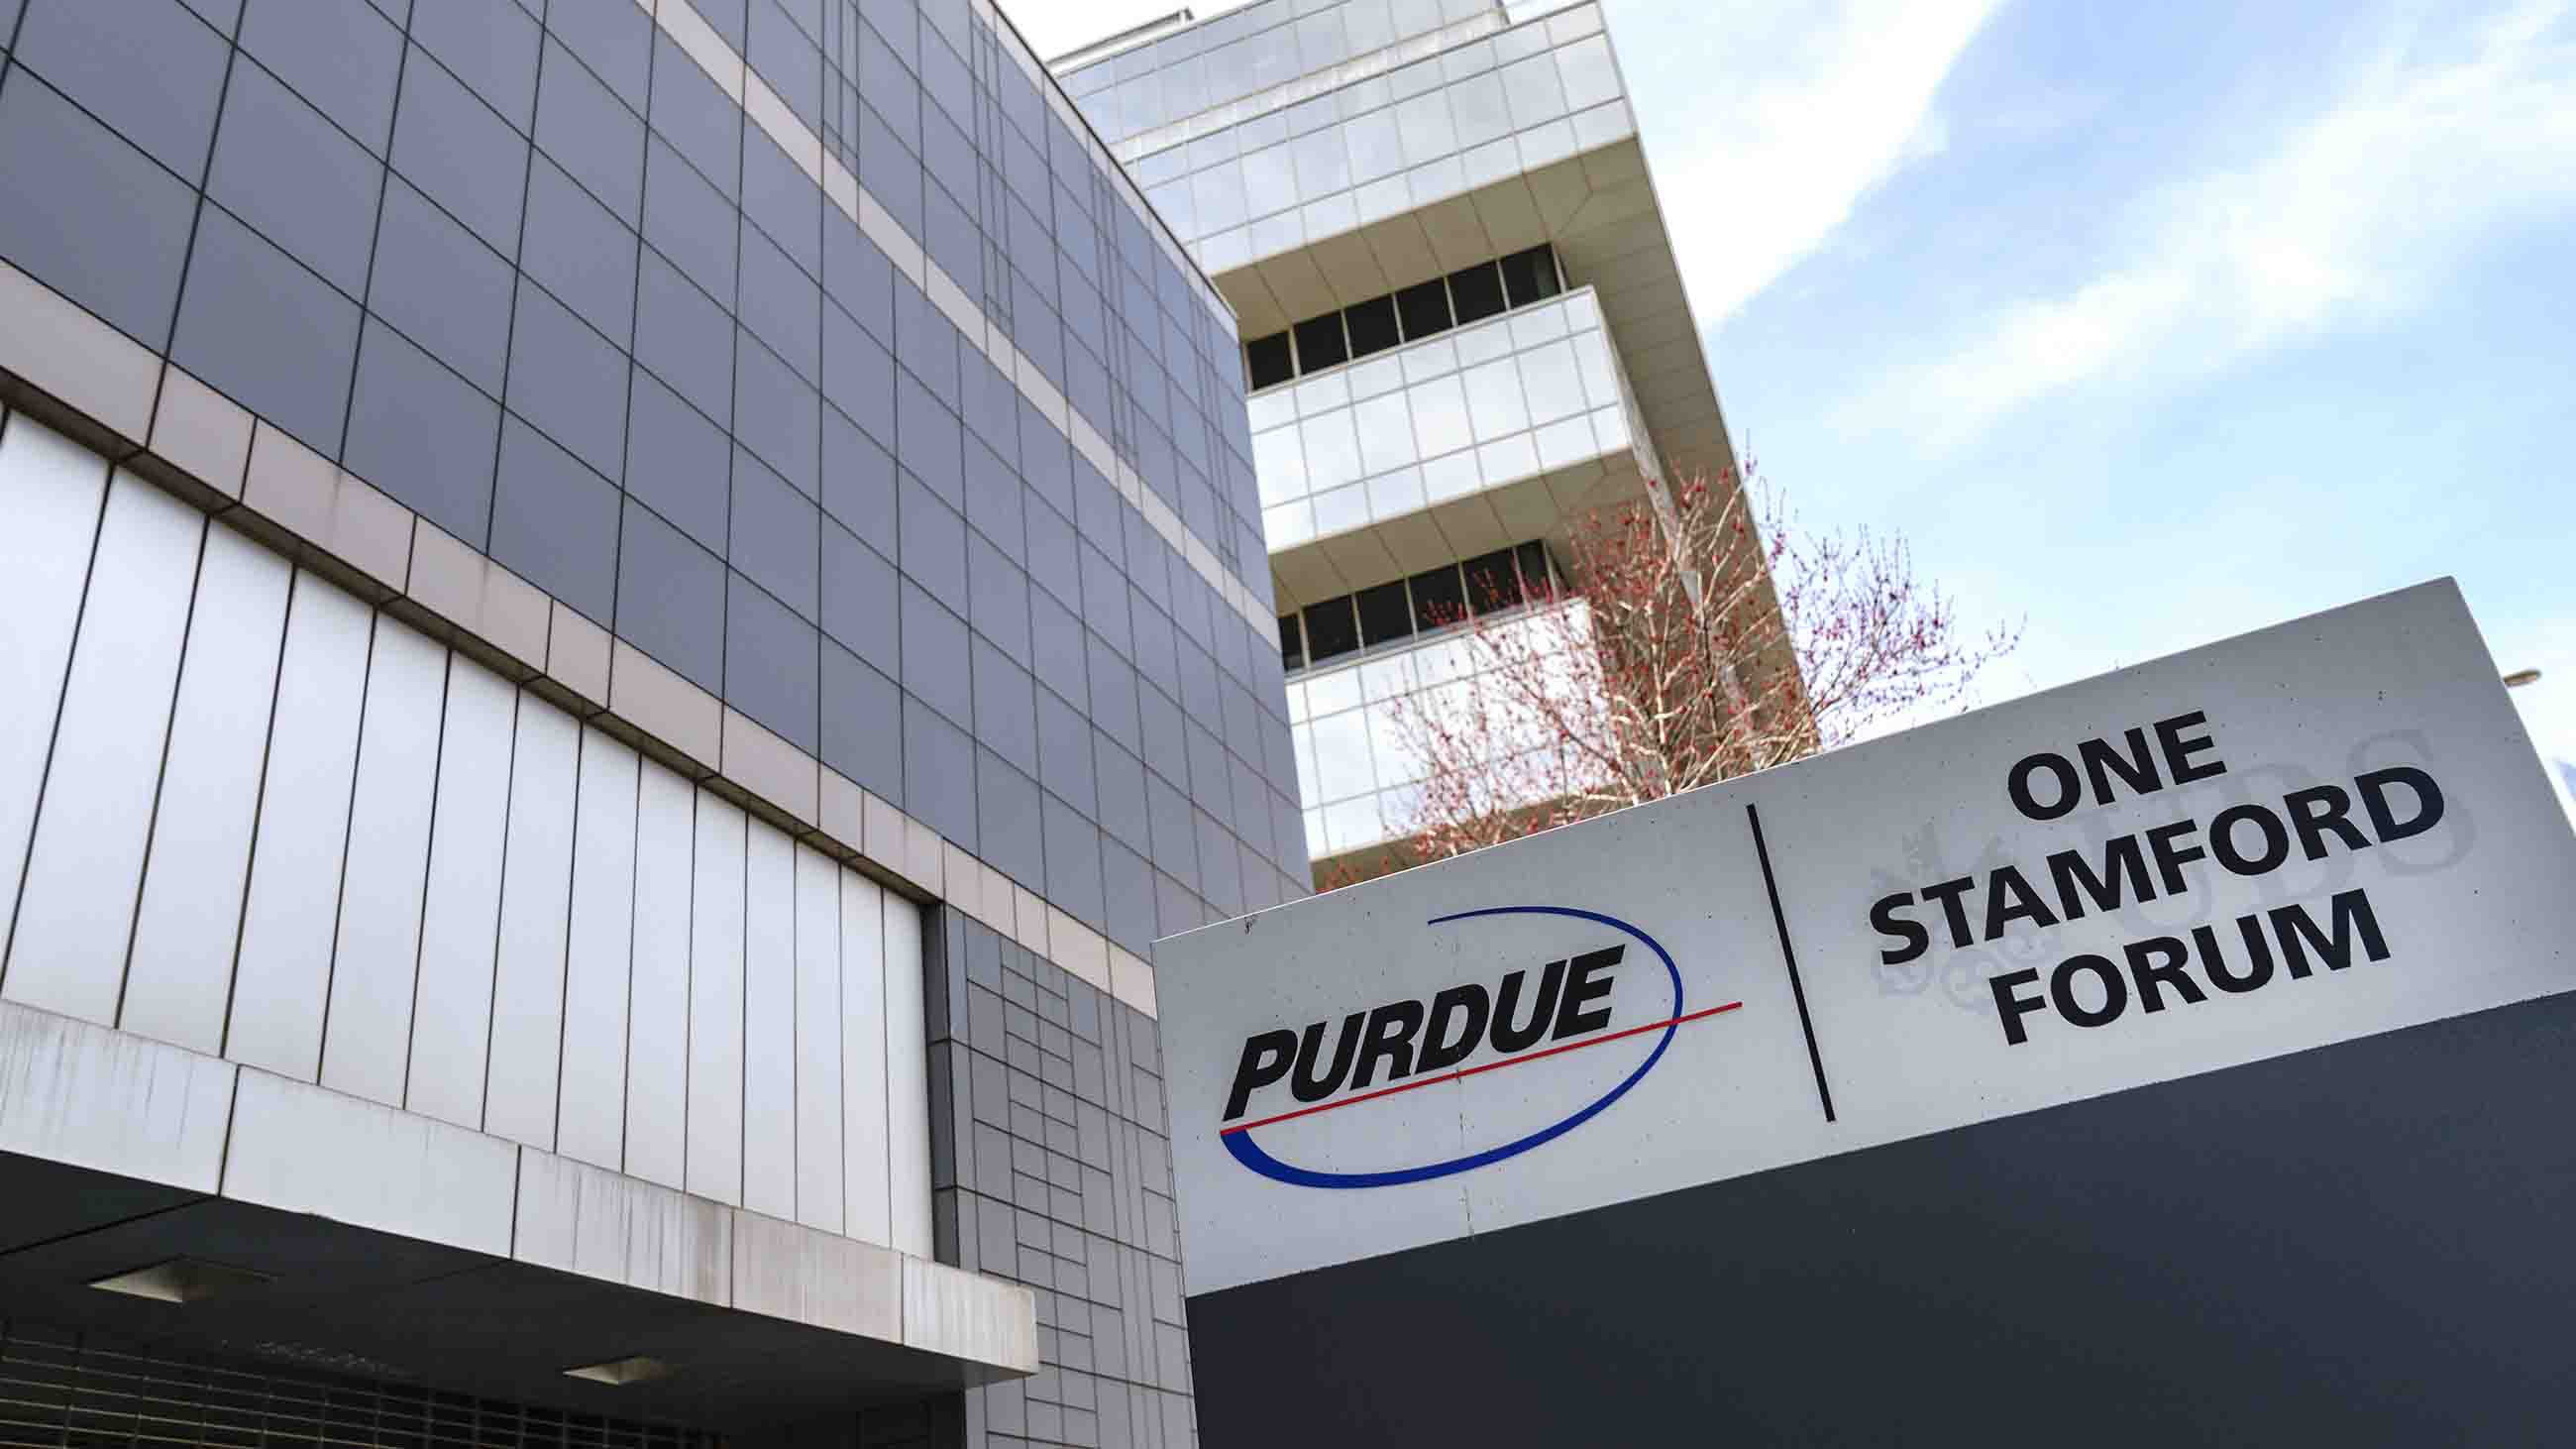 Purdue Pharma | Adler Law Firm PLLC